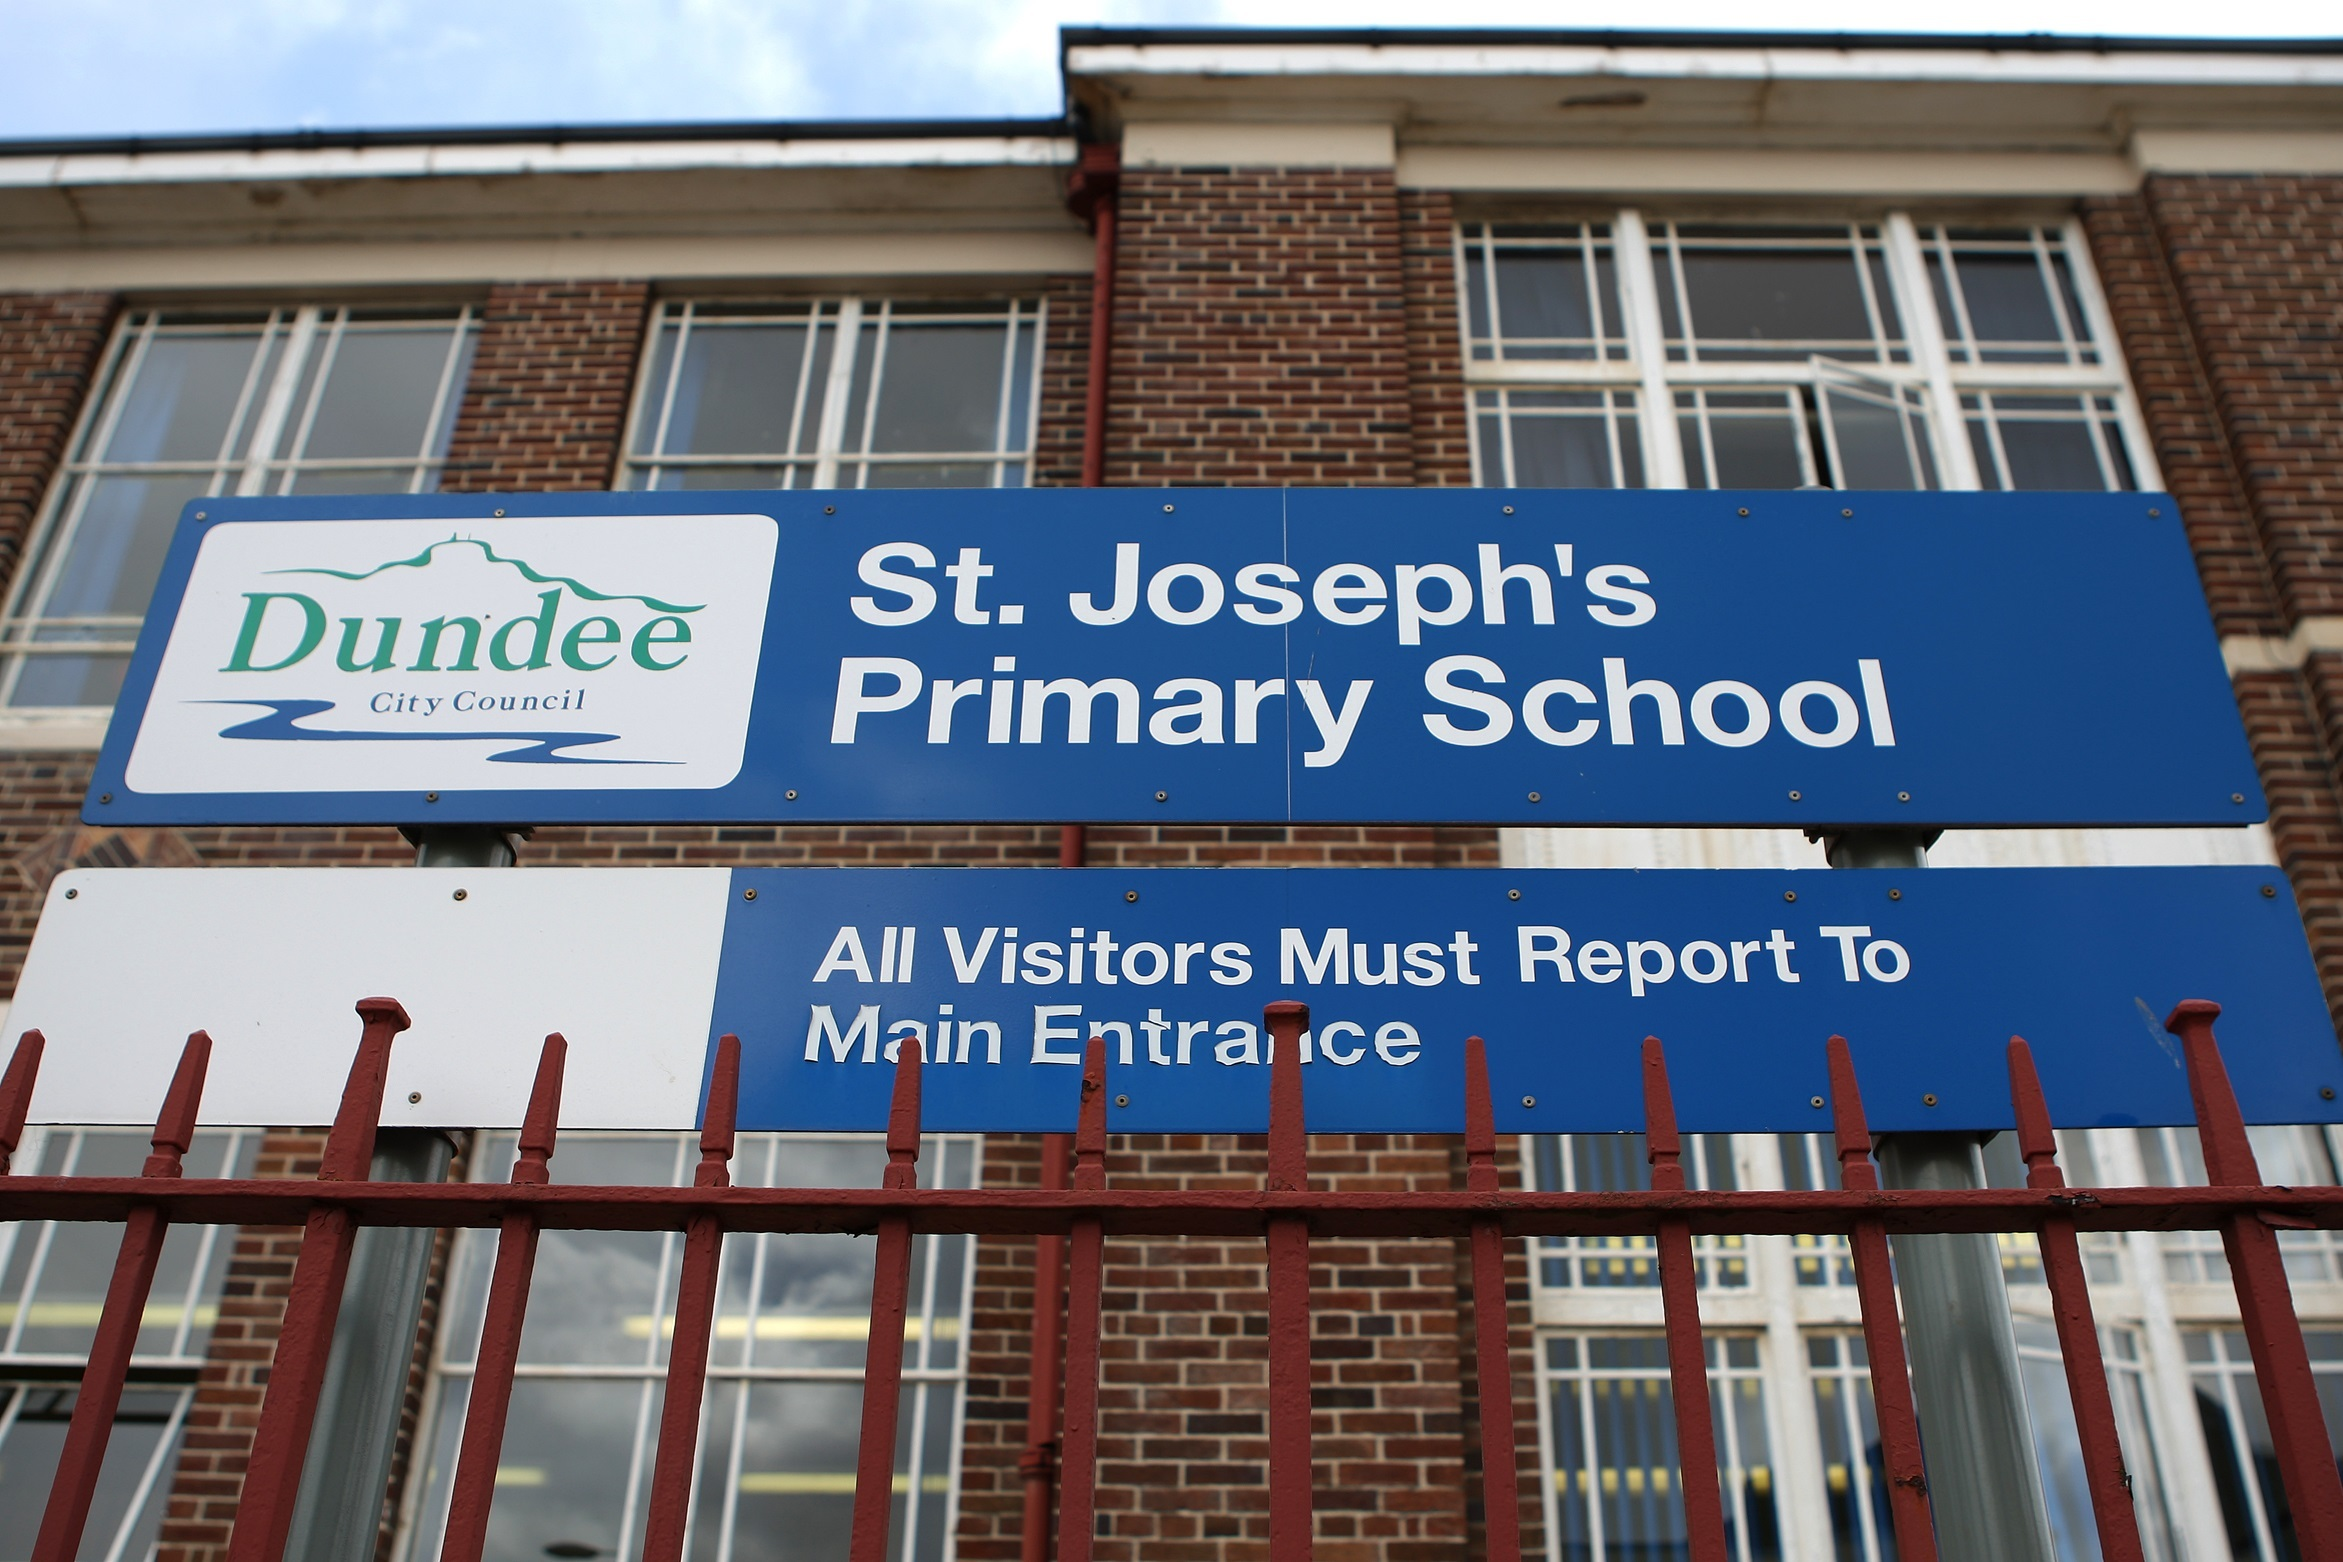 The former St Joseph's Primary School on Bellfield Road.